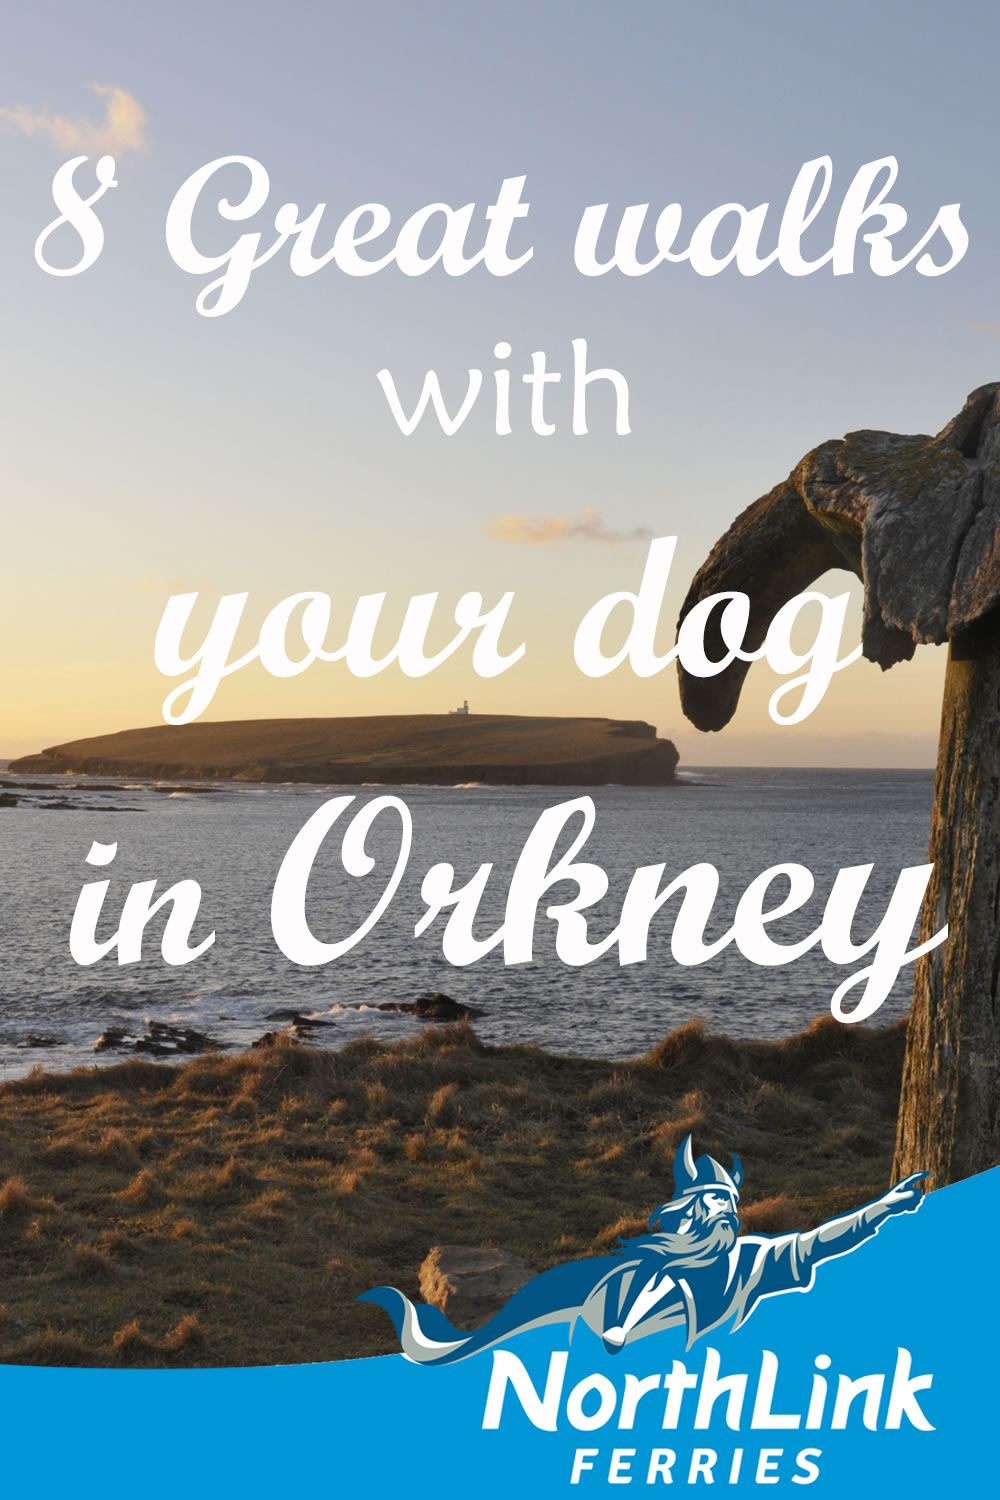 8 Great walks with your dog in Orkney